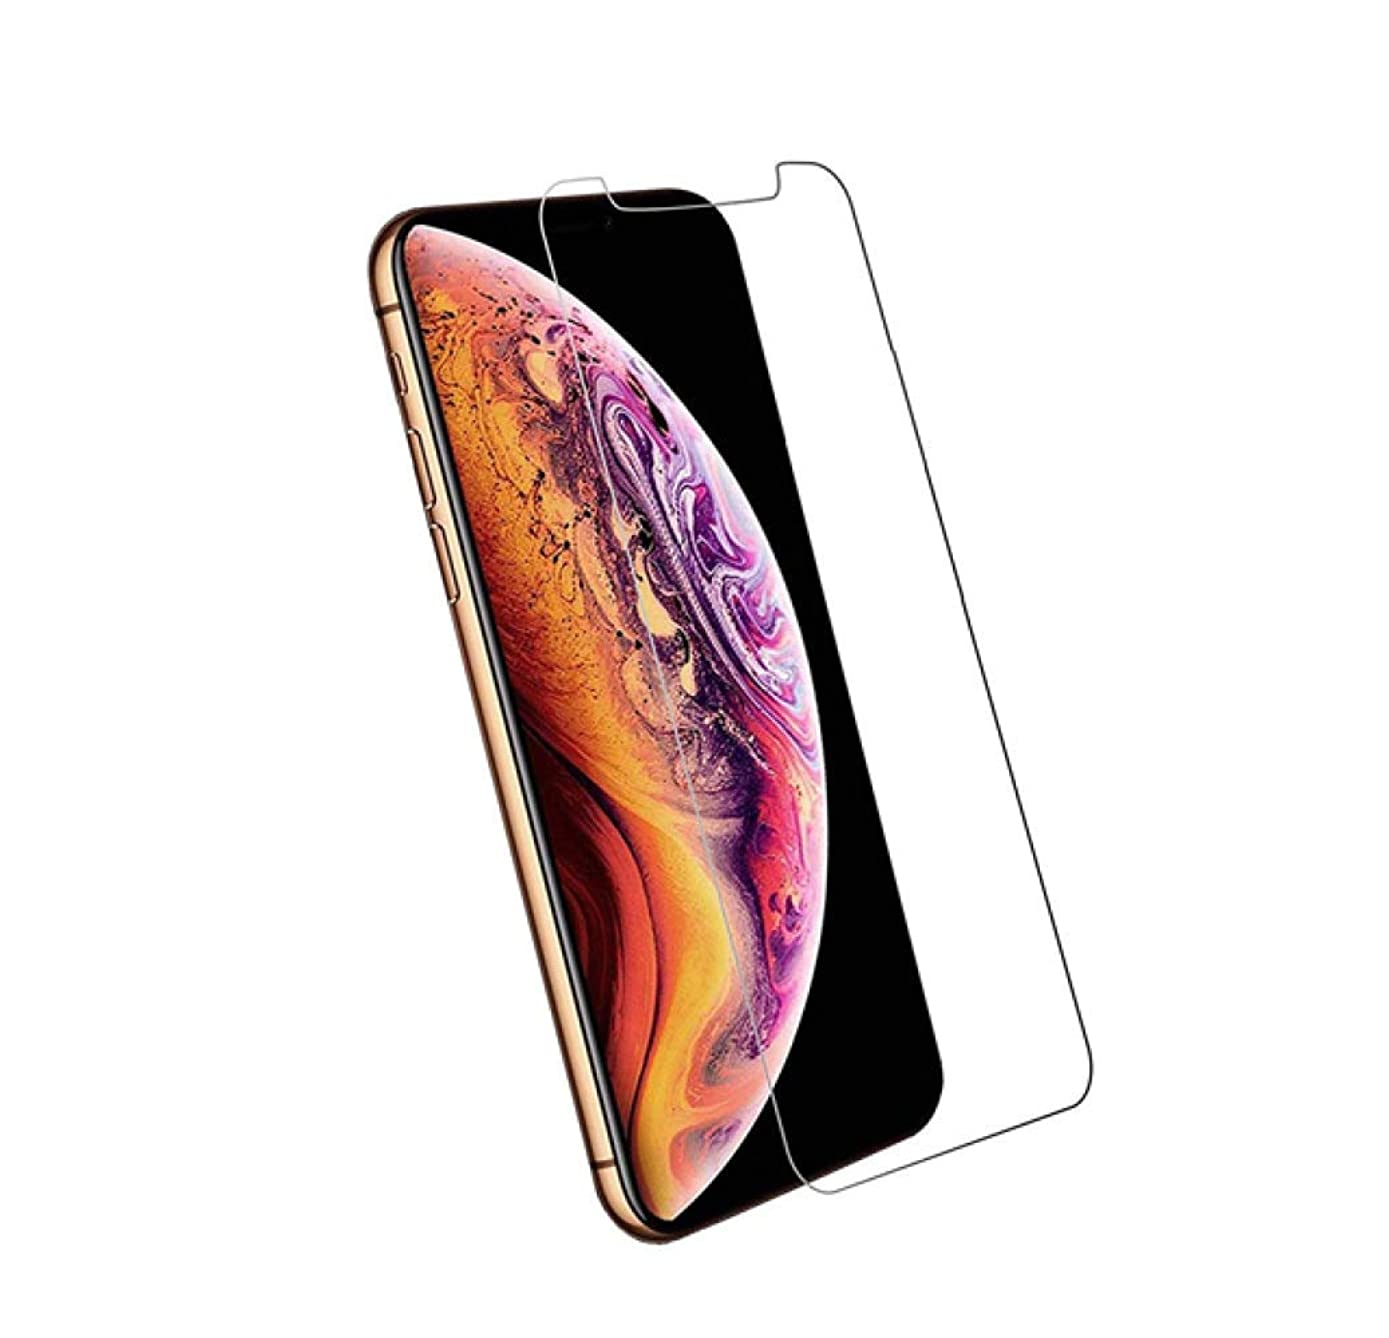 Screen Protector for iPhone Xs/X [2-Pack] Premium Tempered Glass Pro+ 0.33mm 2.5D 9H Glass Easy Install 5.8in Anti-Fingerprint Gorilla Durable Glass Shatter Proof 3D Ultra Clarity Gaming Display 2019